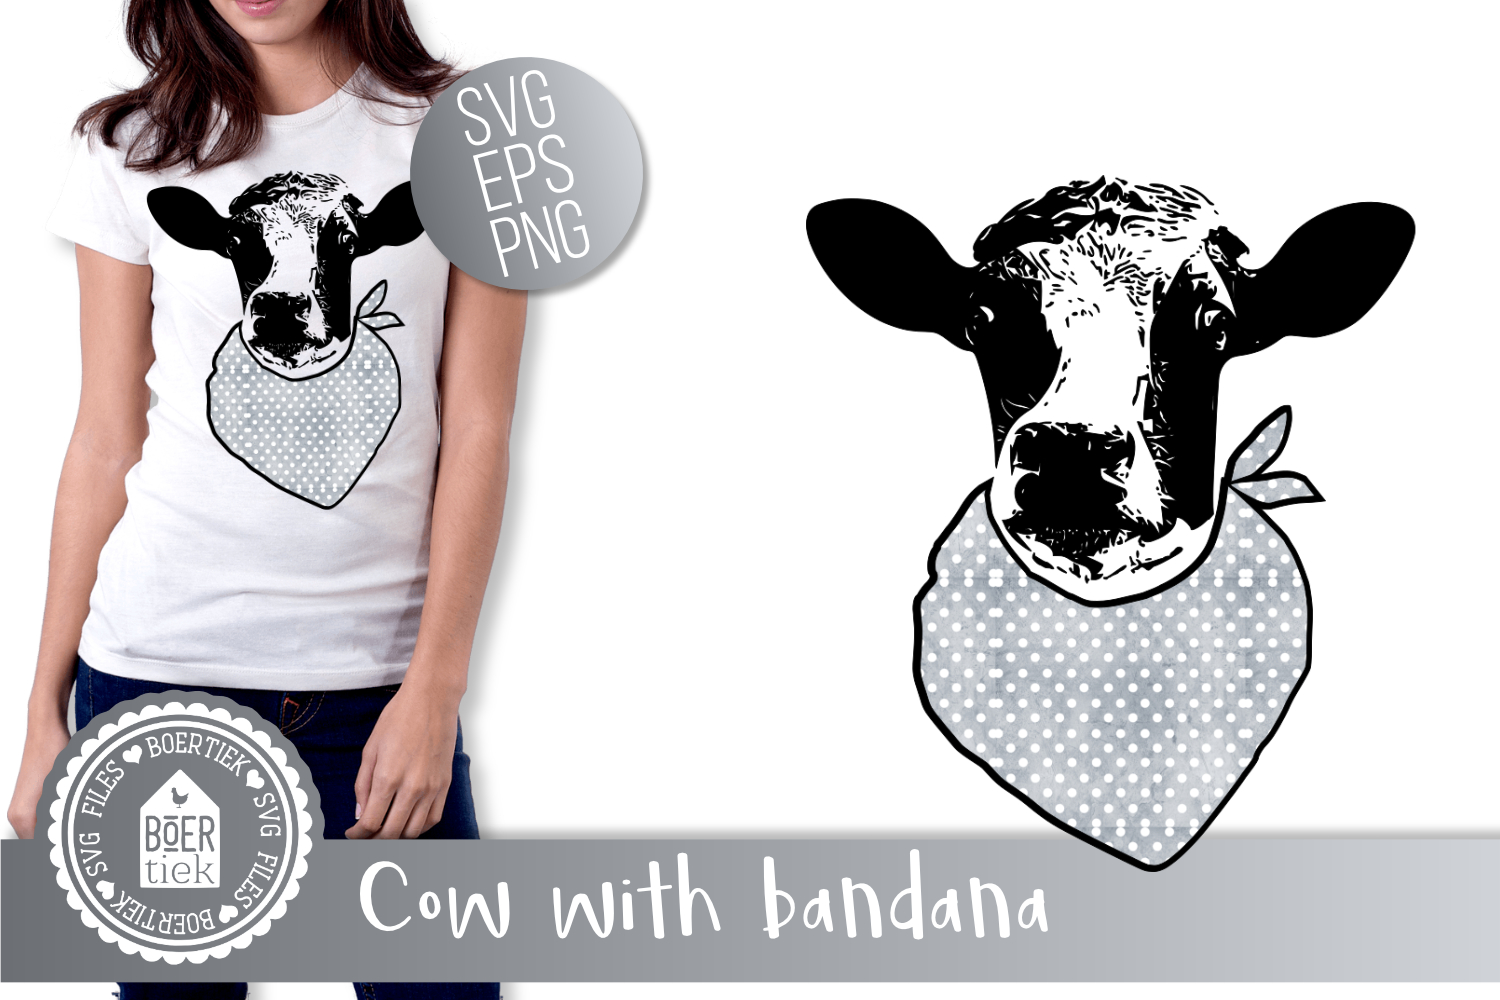 Cow with bandana, SVG cutting file example image 1